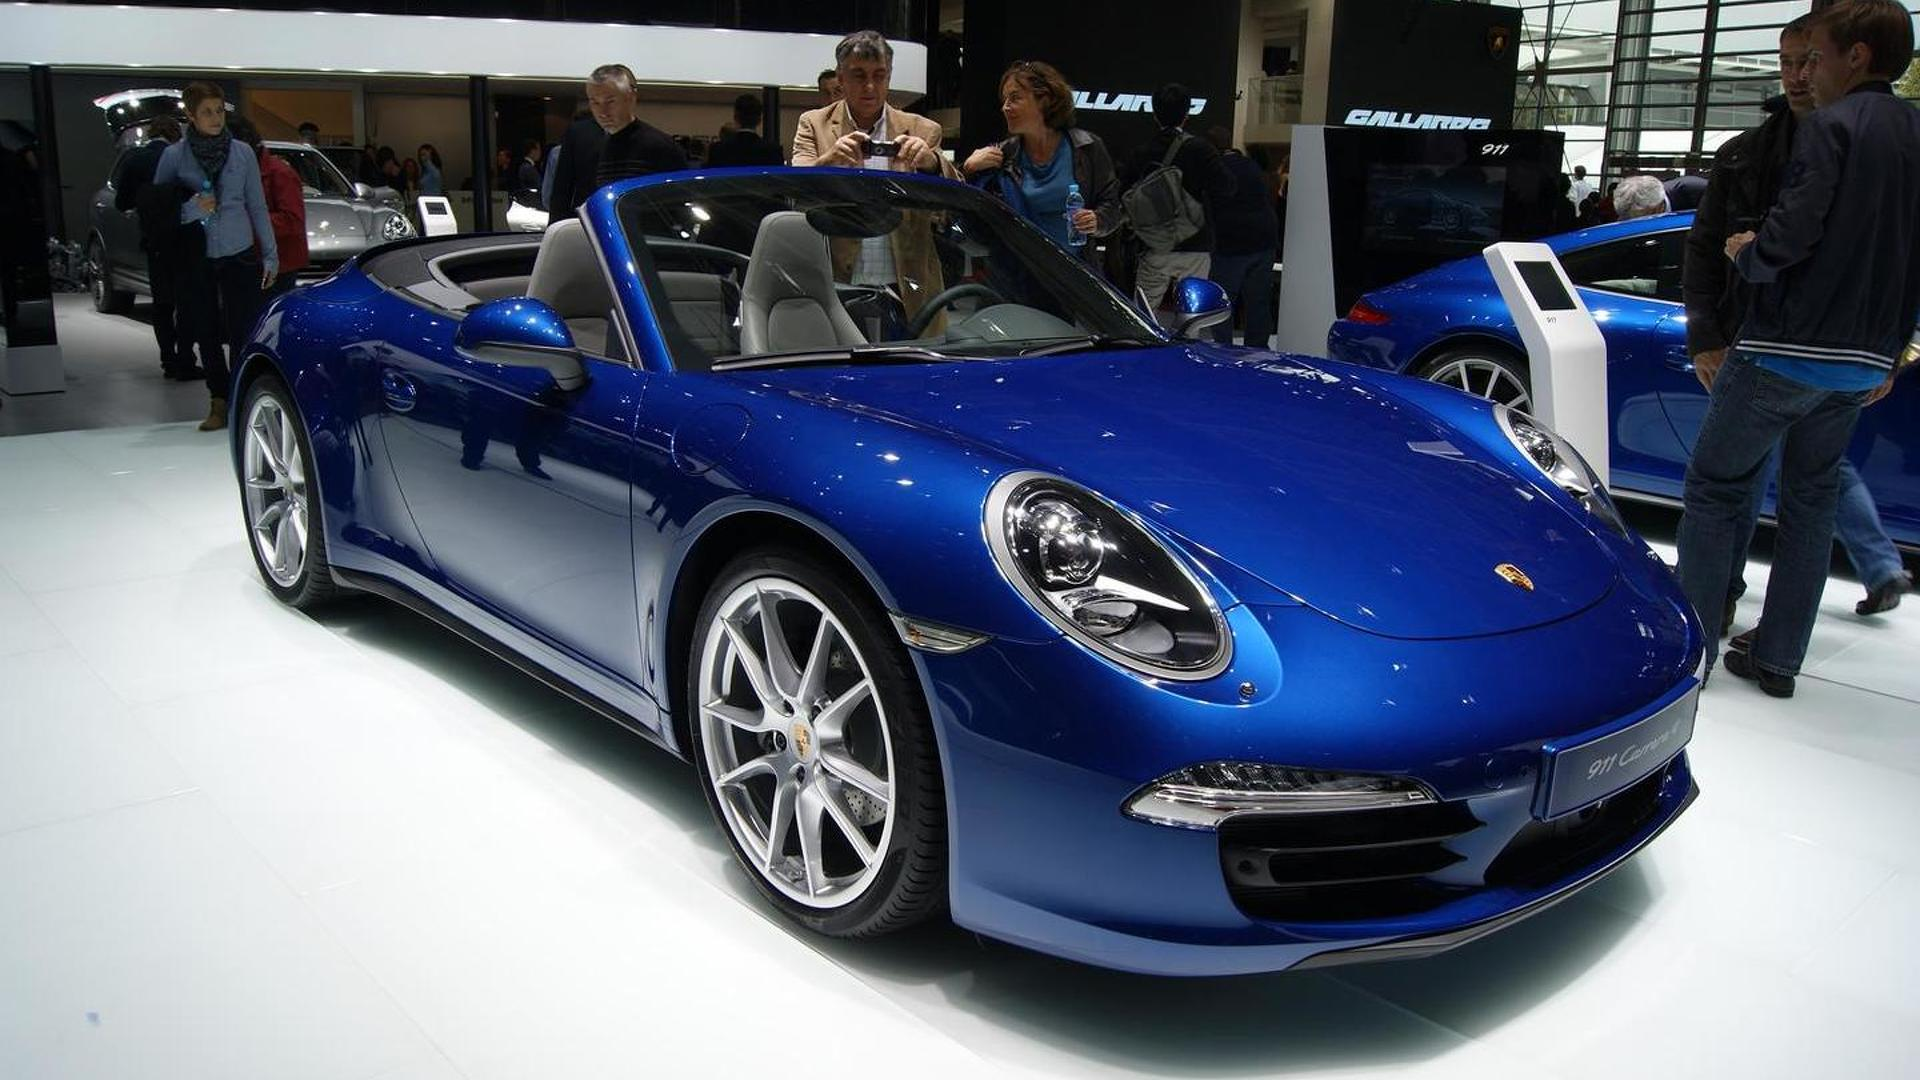 Porsche 911 4 & 4S officially unveiled in Paris